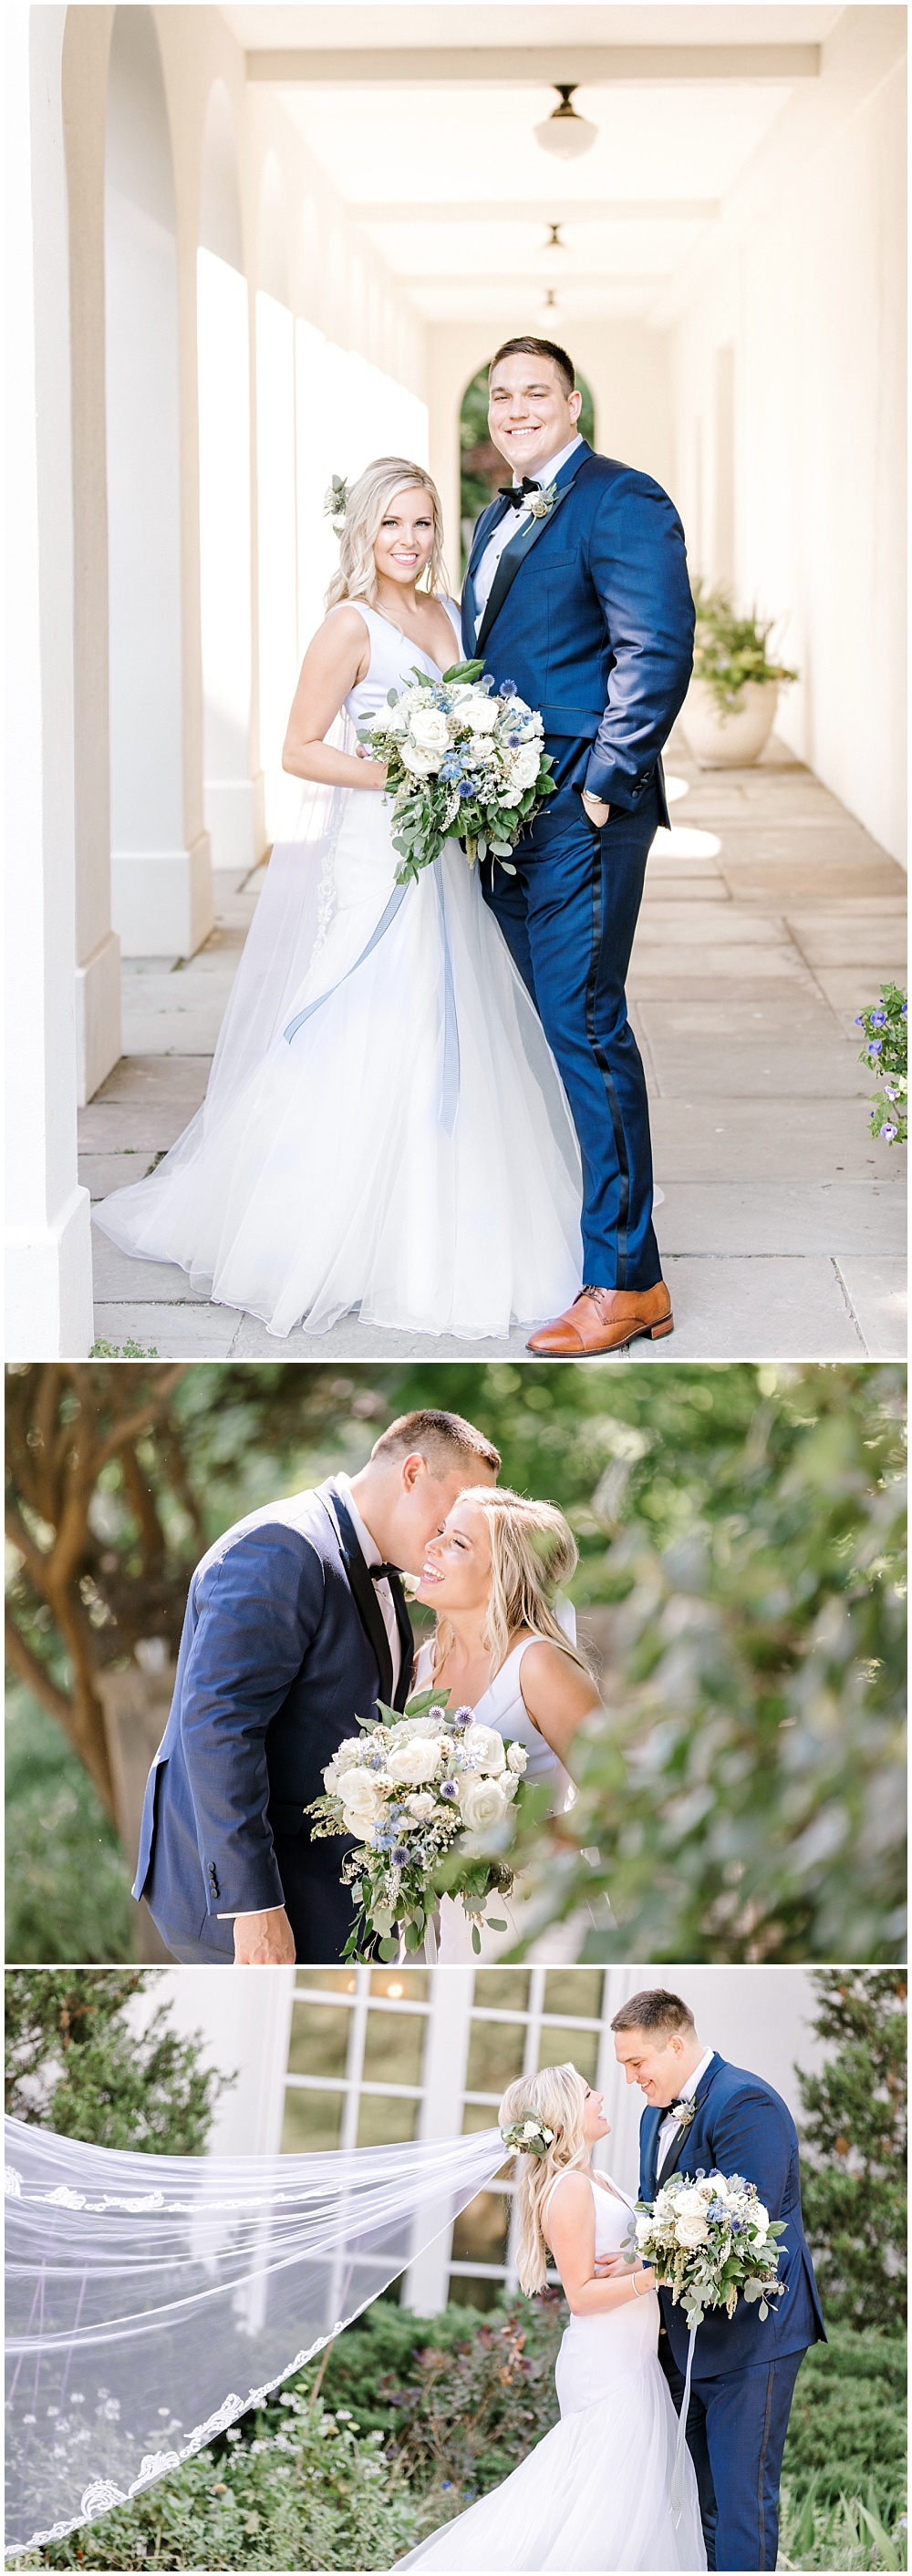 Bride and groom garden portraits; navy groom's suit | NFL Player Nick Martin's rustic chic summer wedding at the Biltwell Event Center